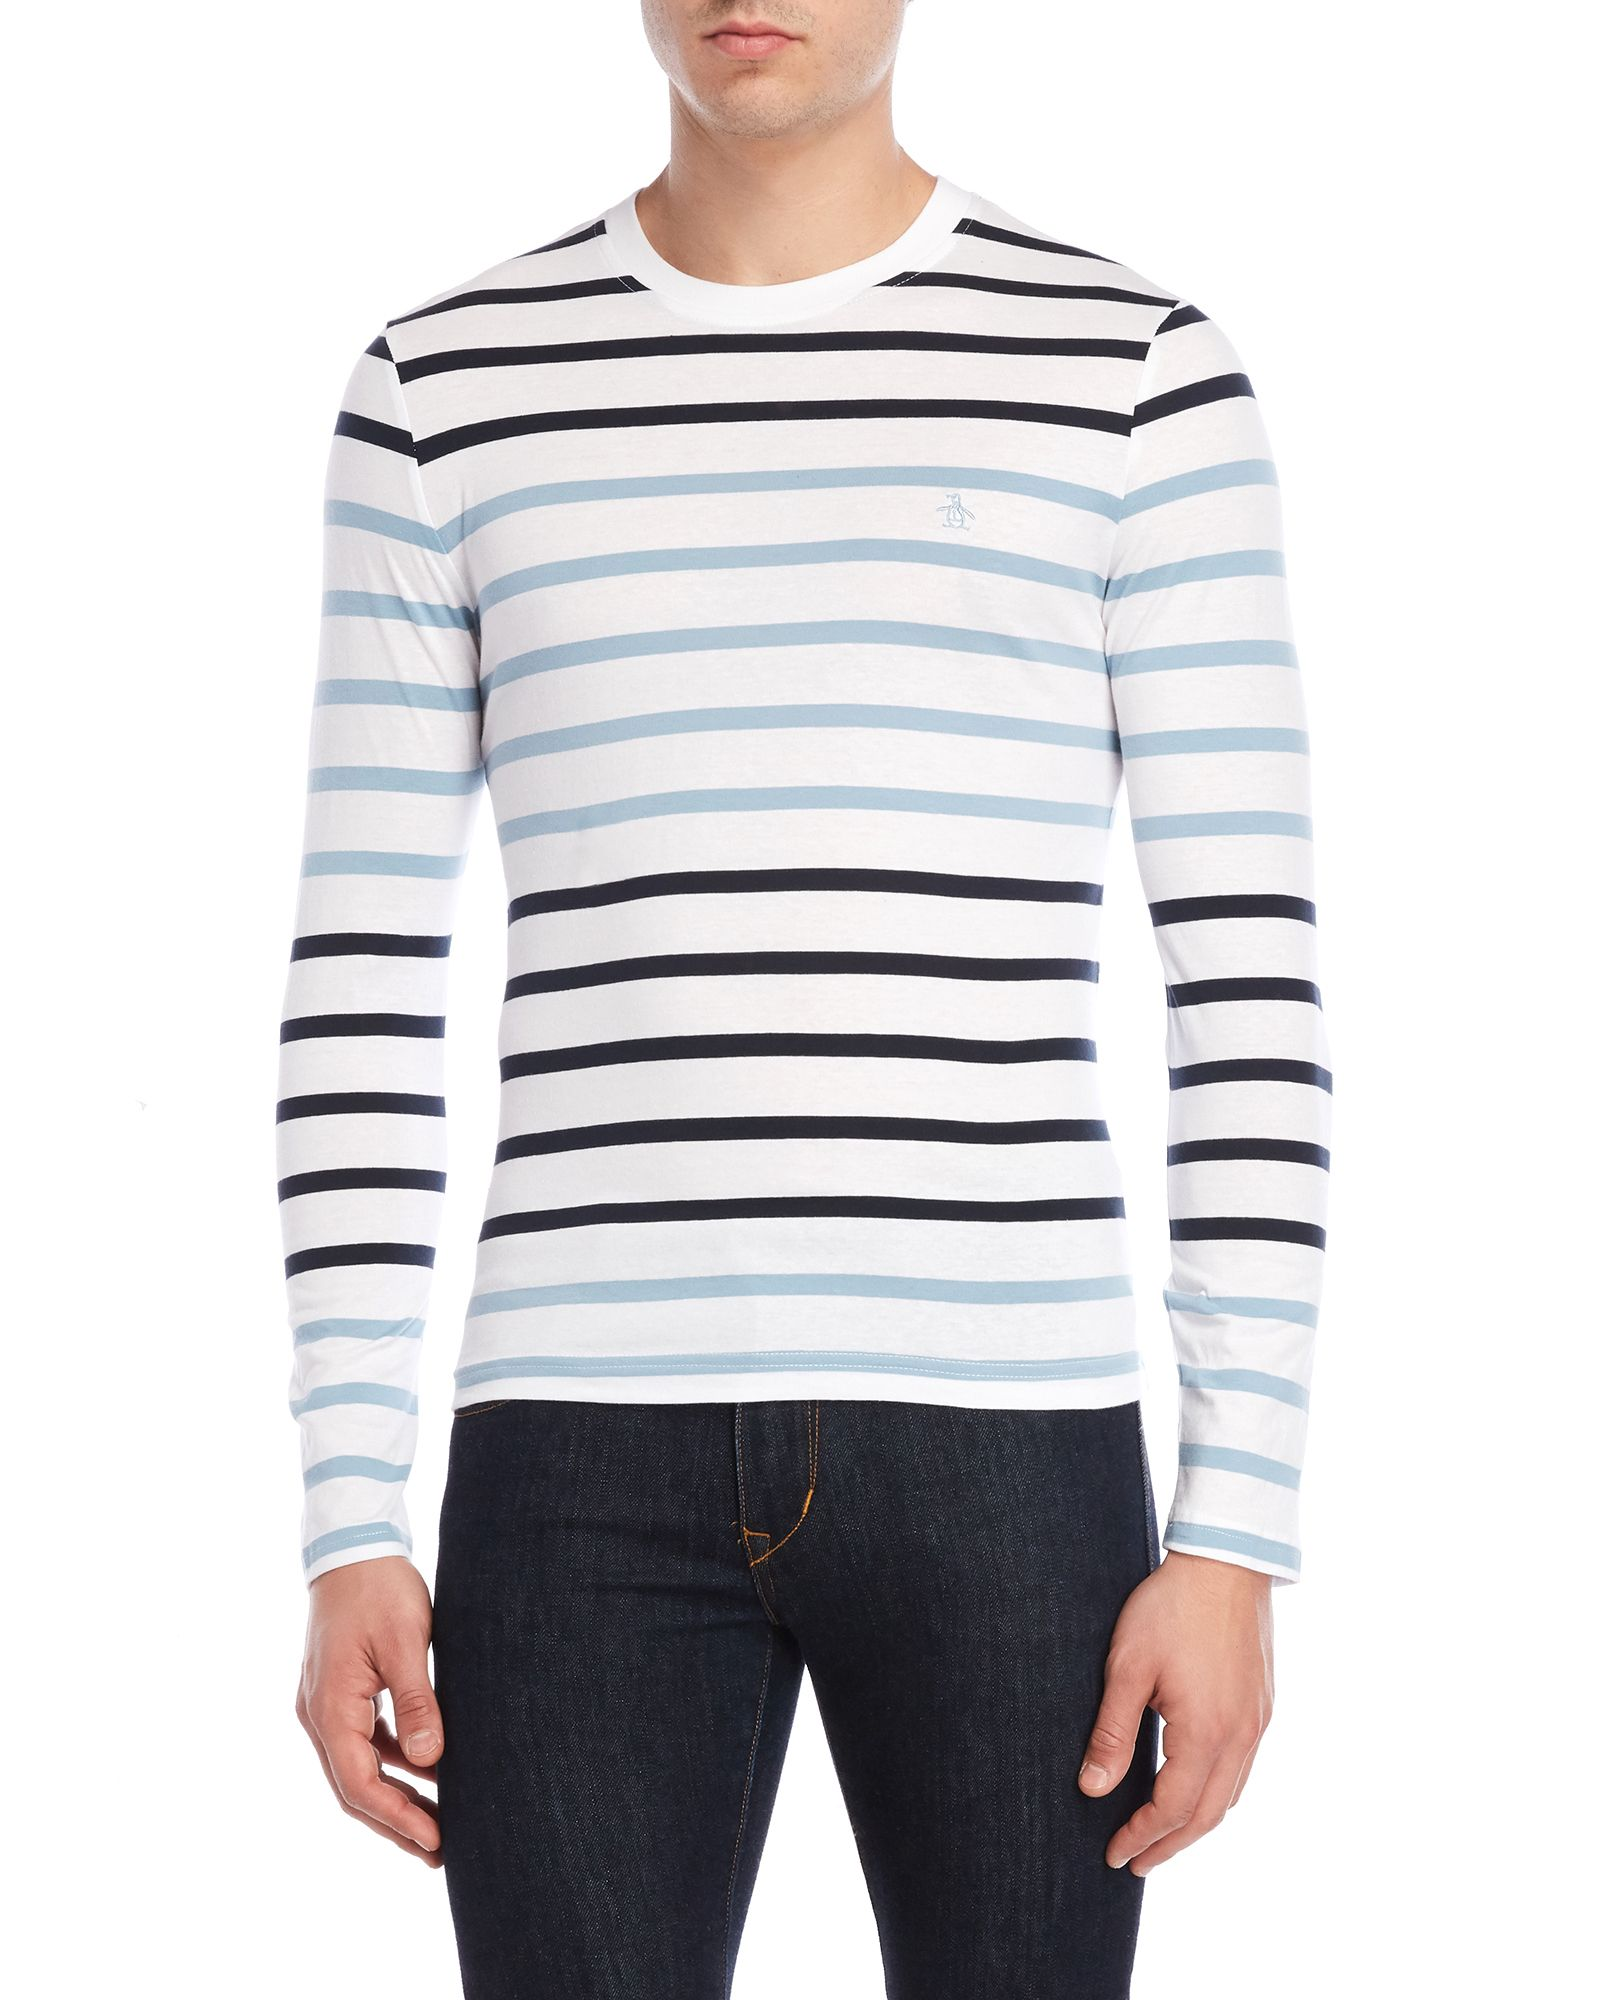 56065a16 Feeder Striped Long Sleeve Tee | *Apparel & Accessories* | Long ...